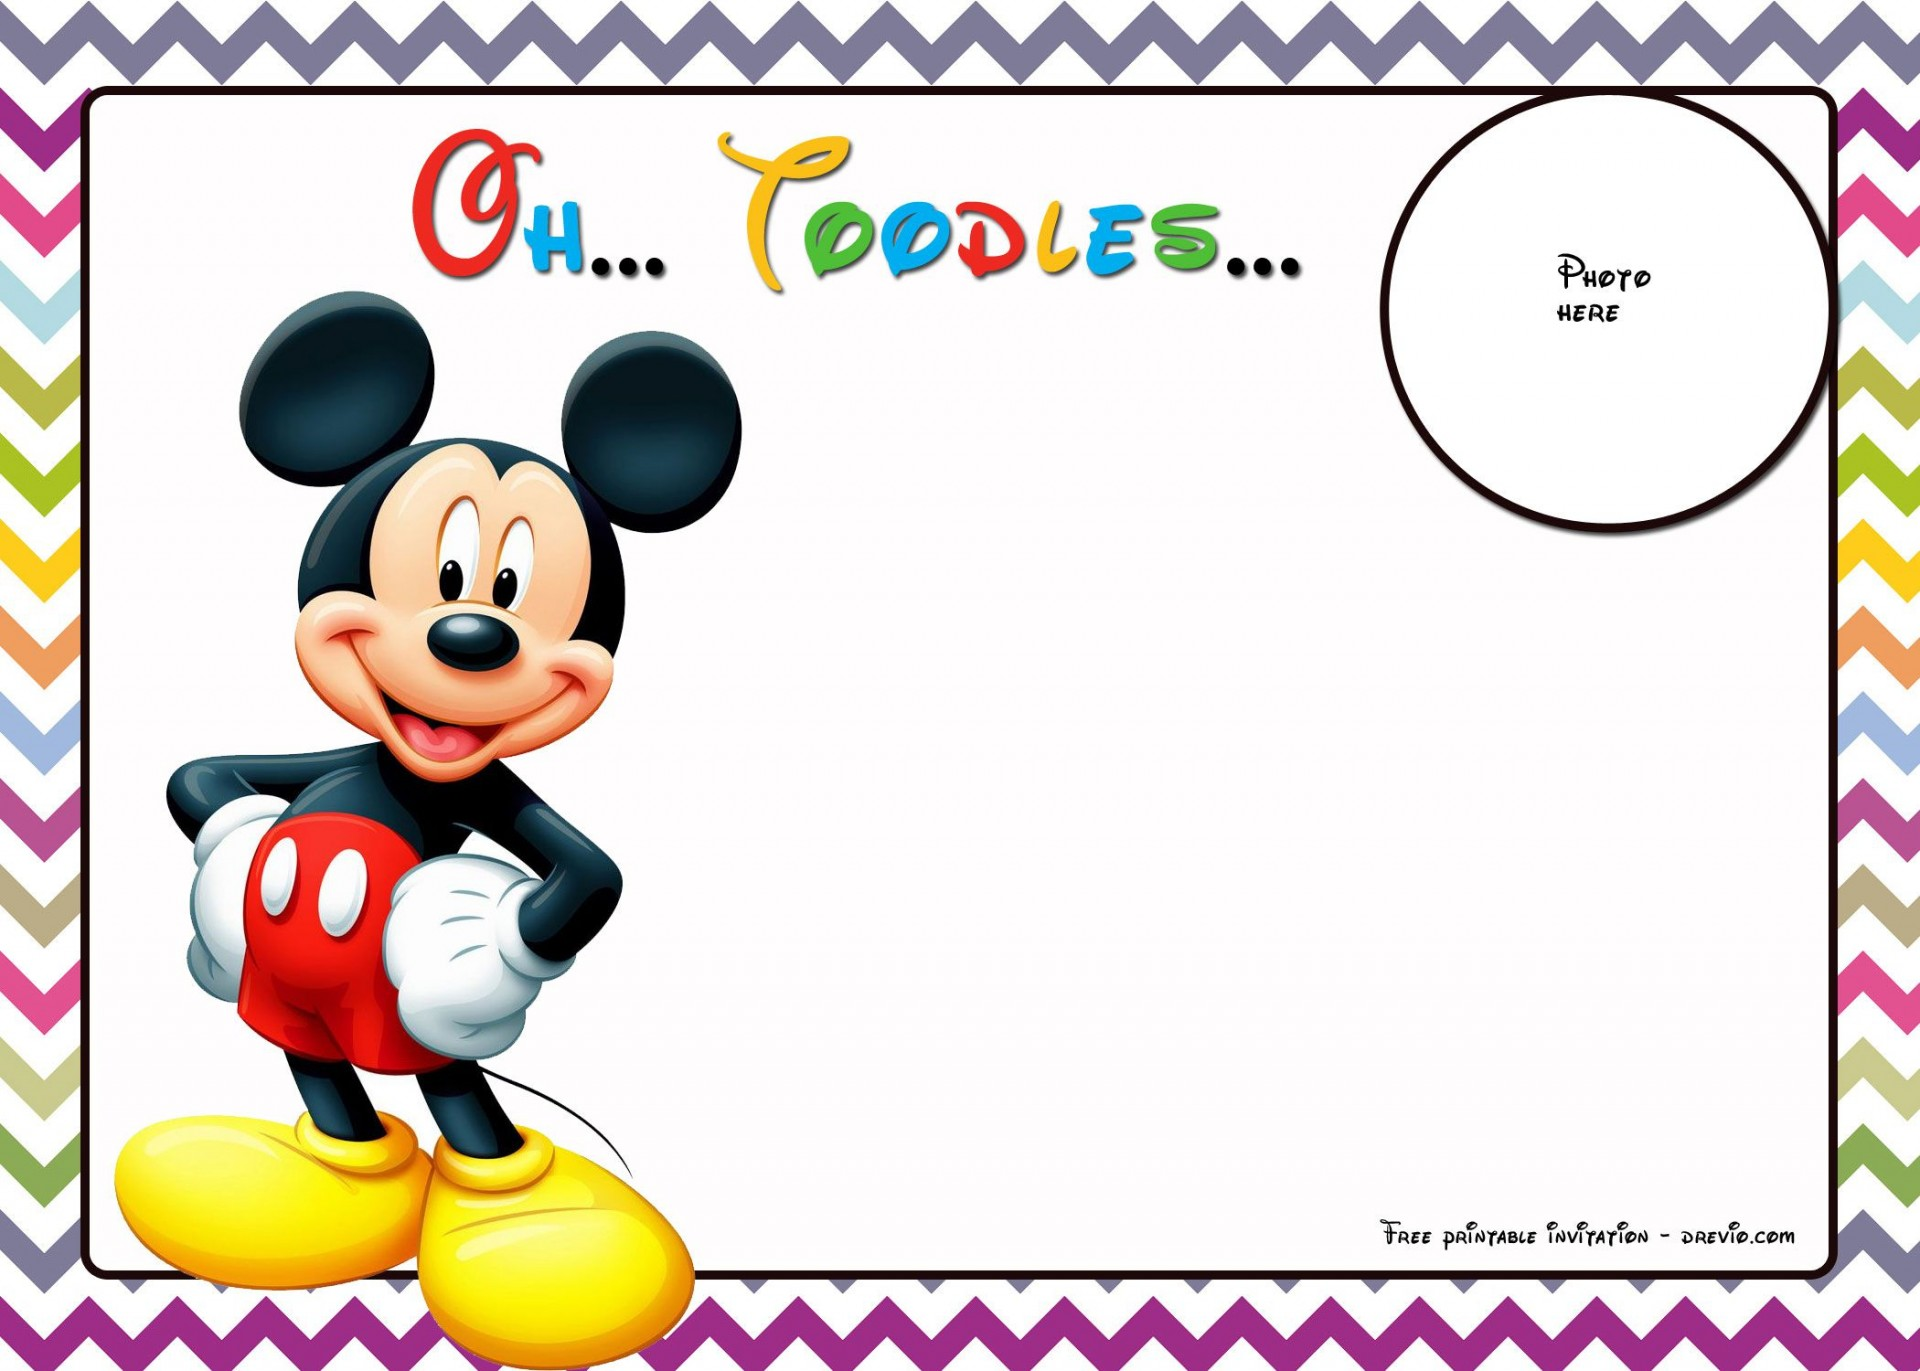 008 Fascinating Mickey Mouse Invitation Template Highest Quality  Free Diy 1st Birthday Baby Download1920